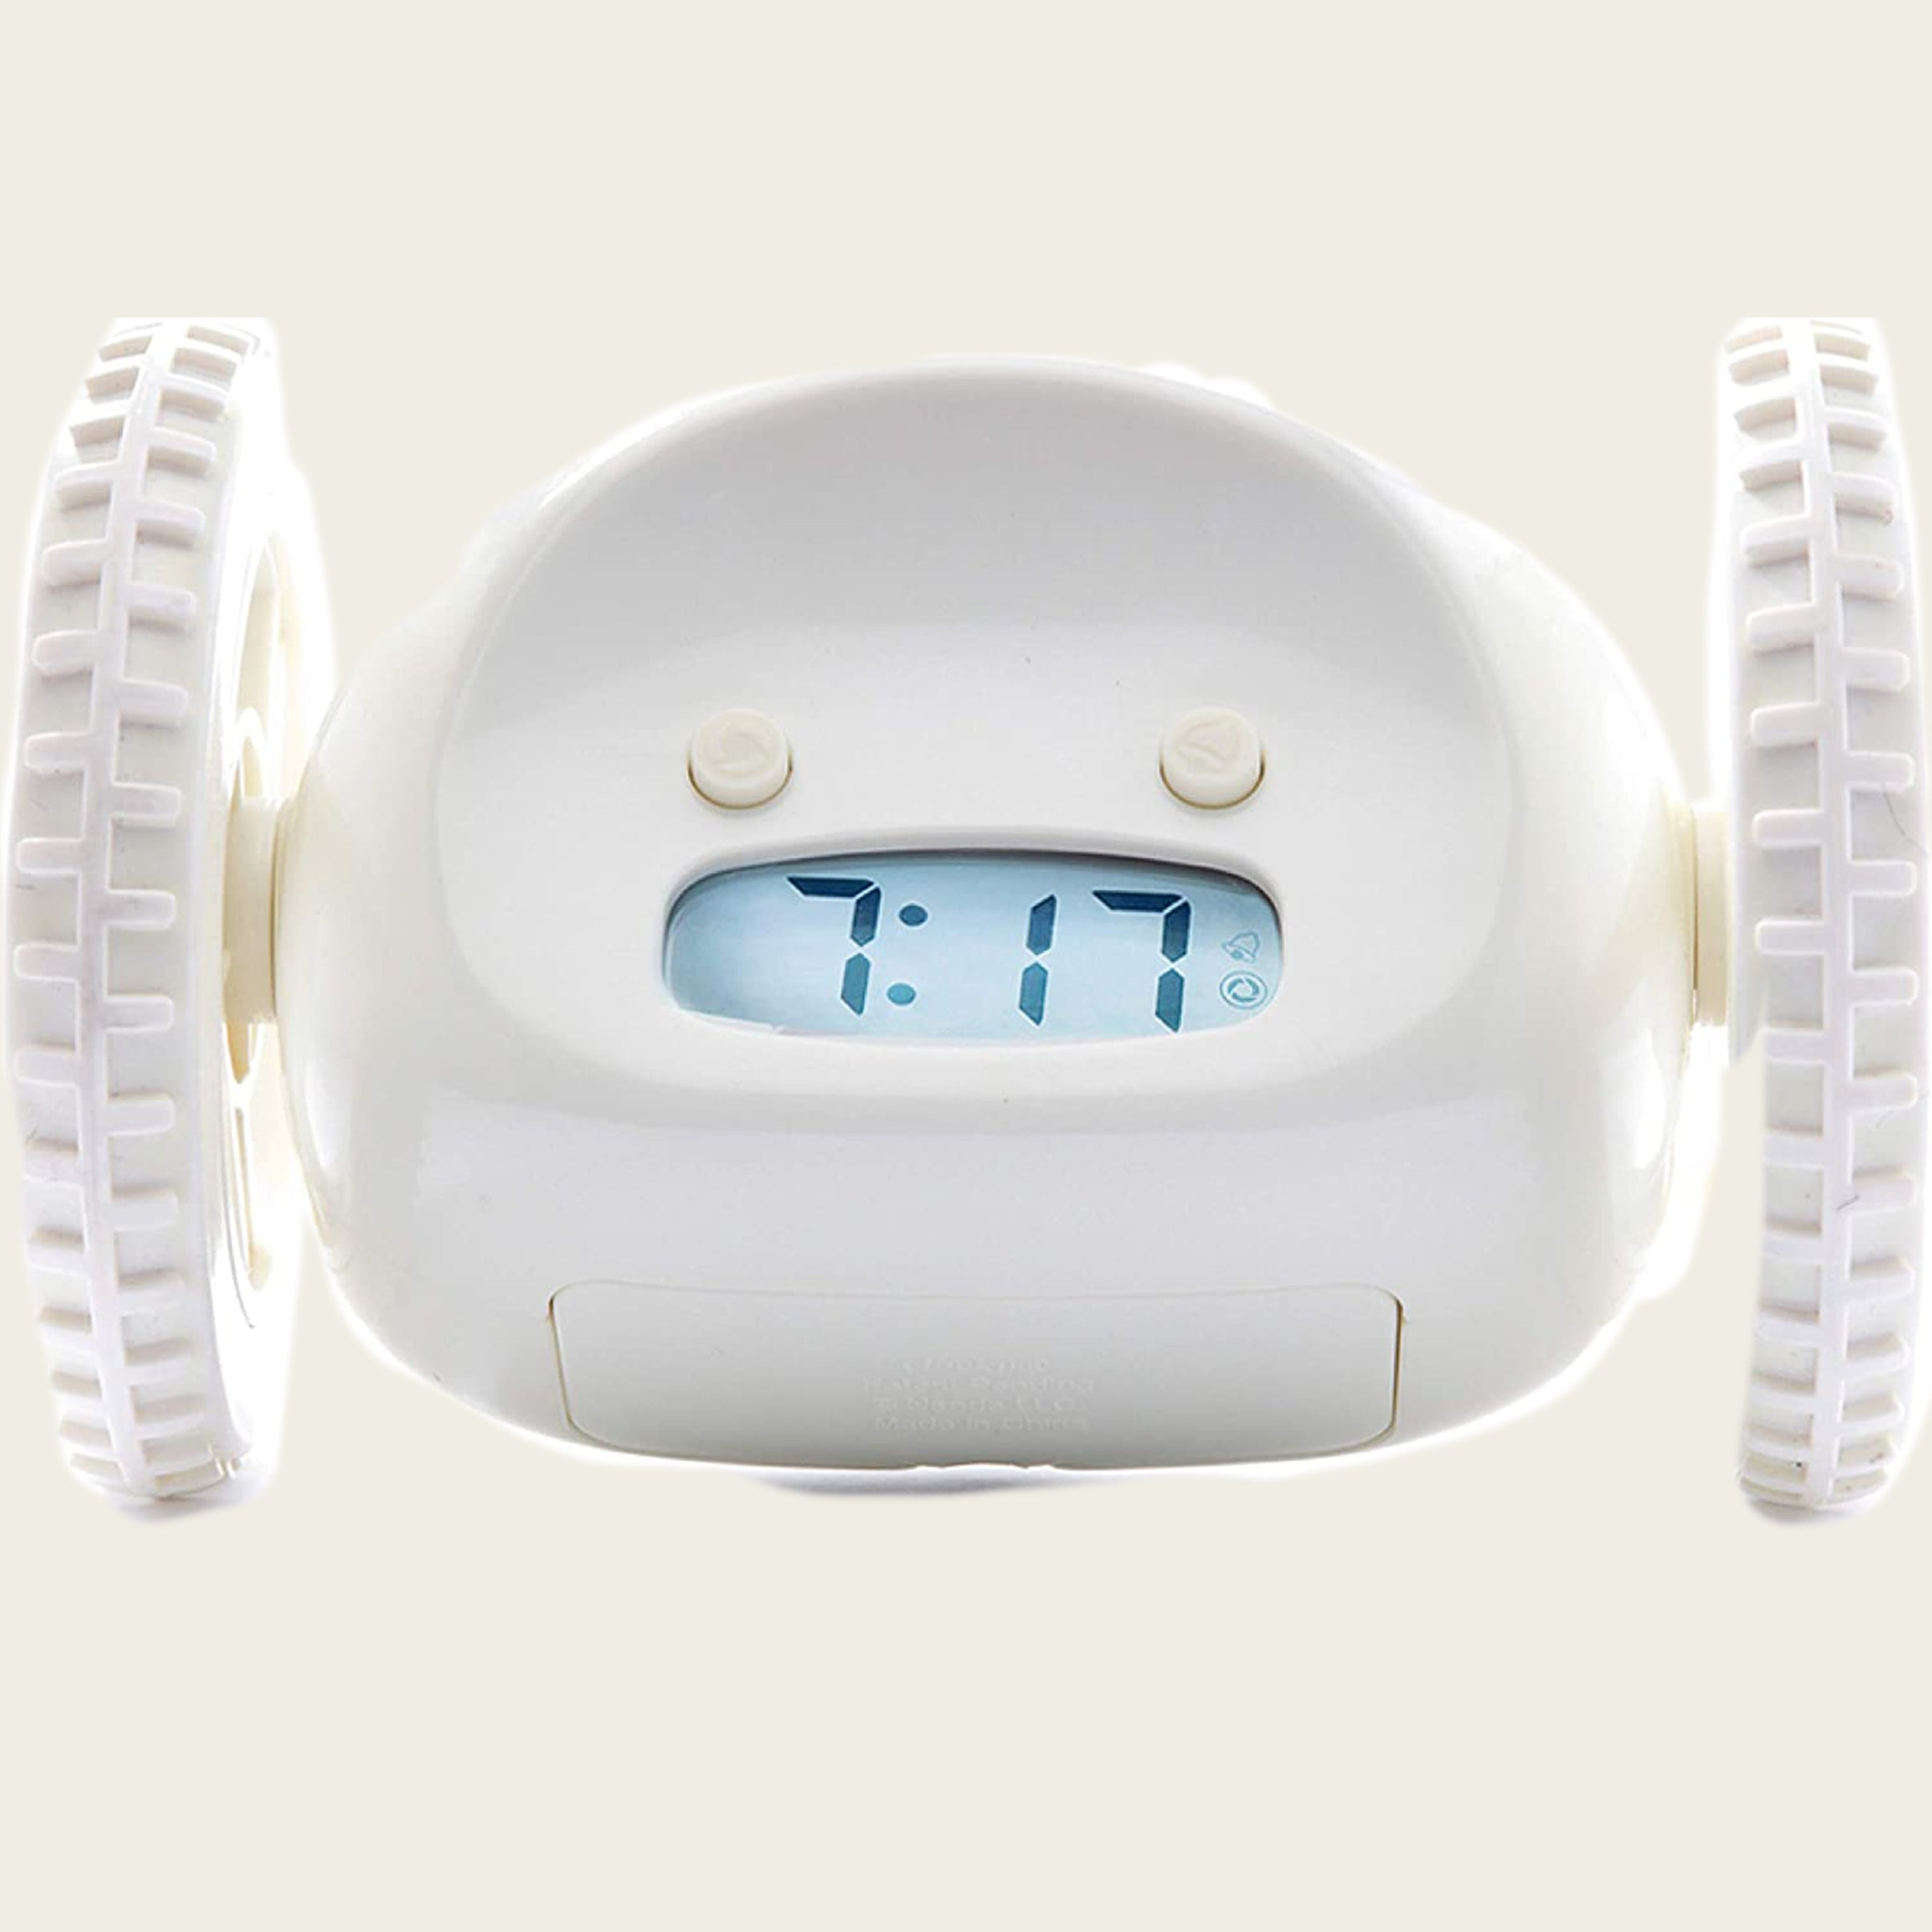 Clocky Runaway Alarm Clock - Blackbird General Store